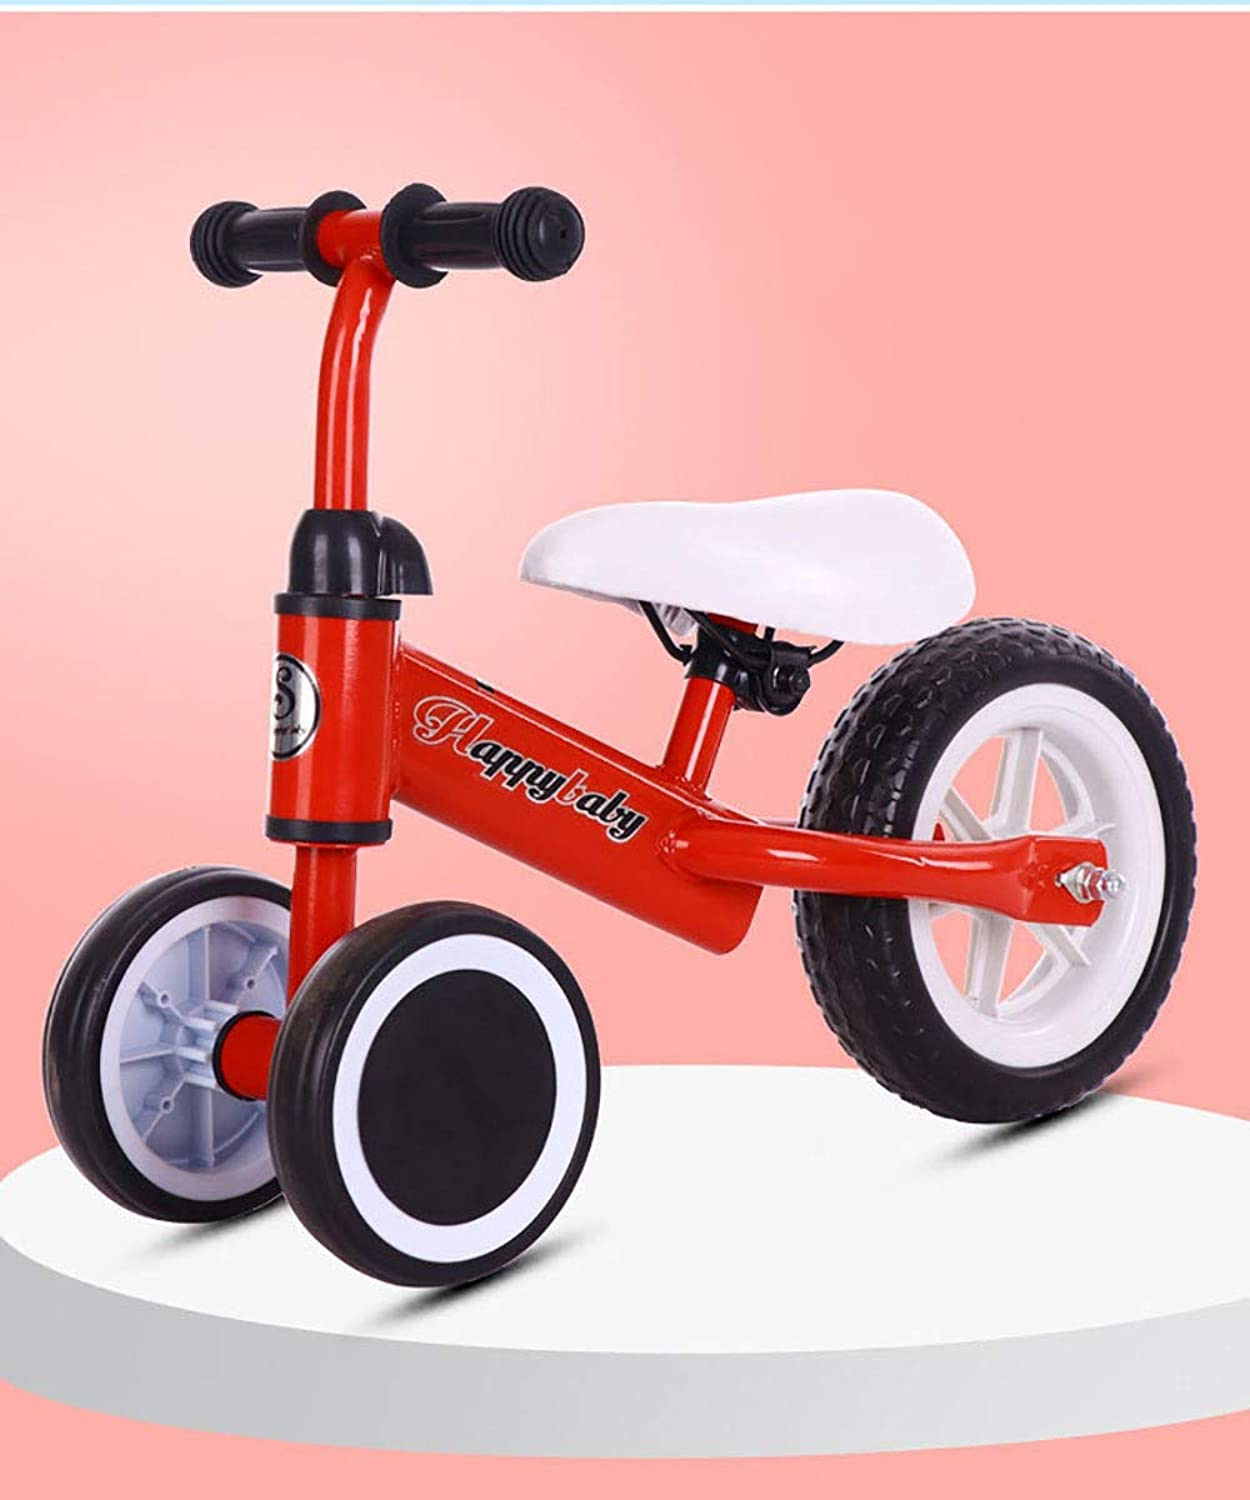 Baby Balance Bike No Pedal Baby Car Ride on Toy for 13 Years Adjustable Handlebar And Seat Durable EVA Foam Wheel Safety Toddler Tricycle Infant First Birthday Gift